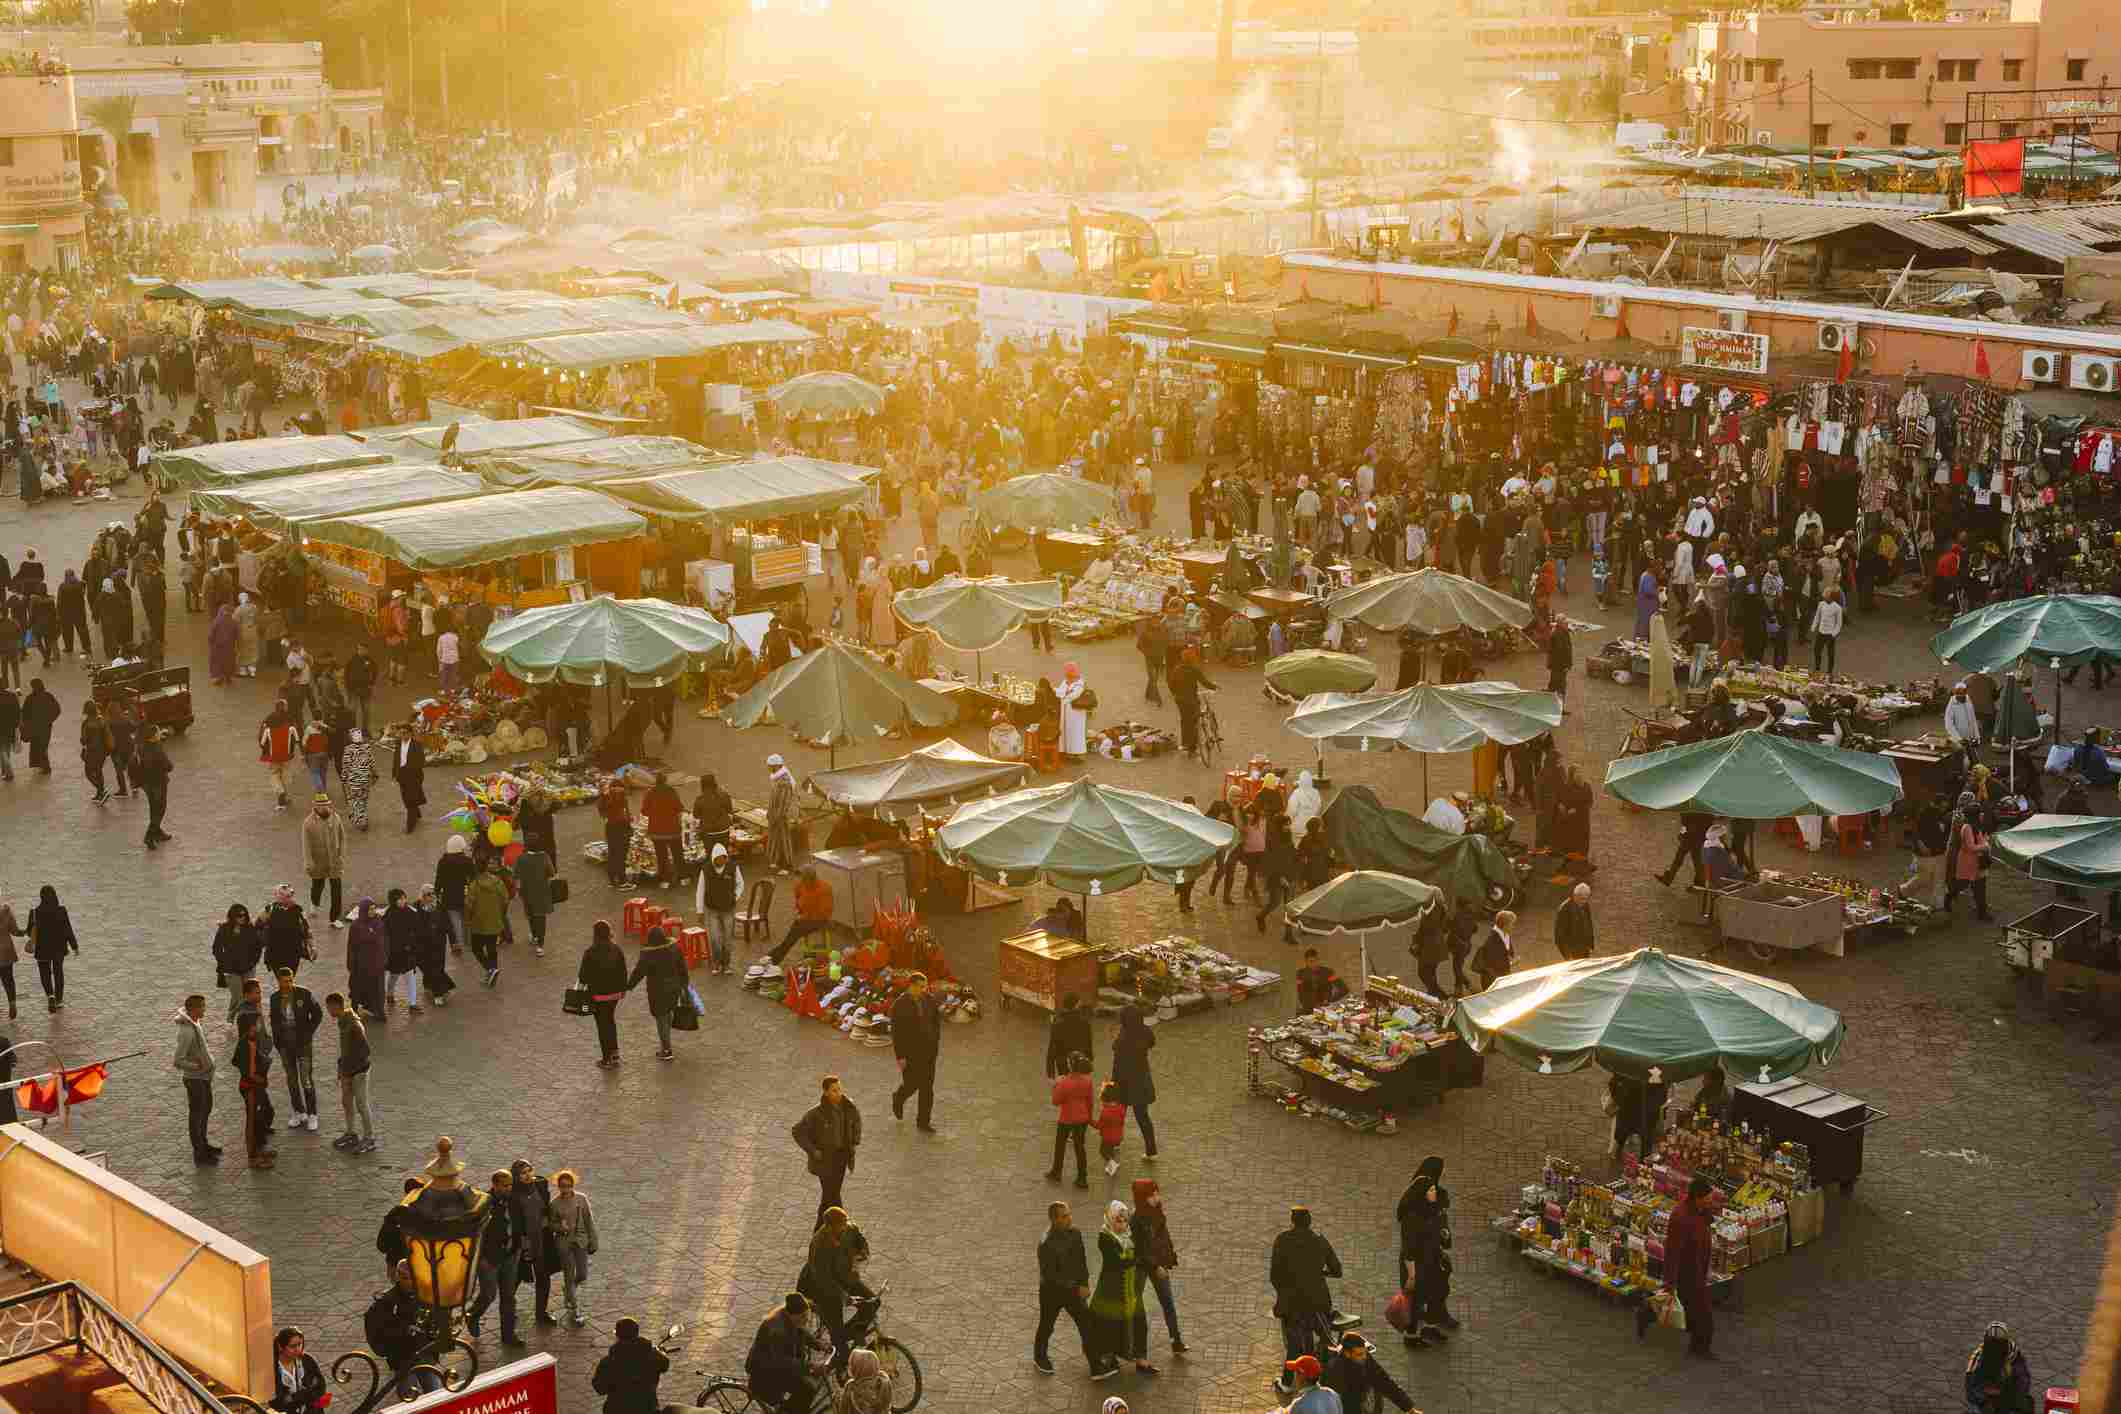 Marrakech marketplace with buyers and sellers